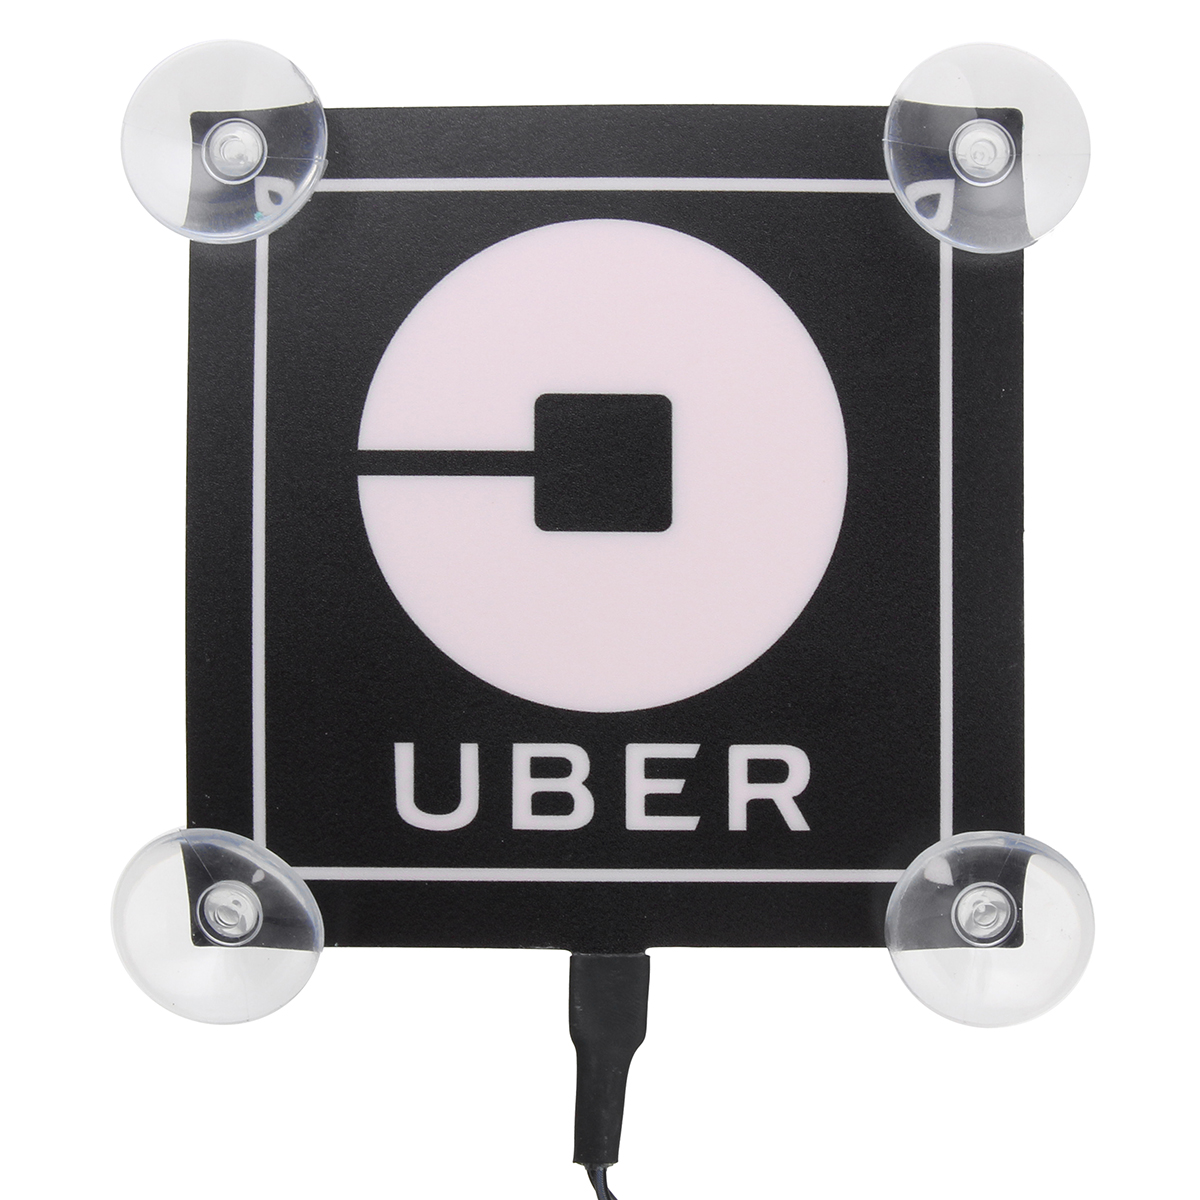 5V Uber LED Service Lamp Car Sign Logo Sticker USB Flashing Decoration Lights Blue